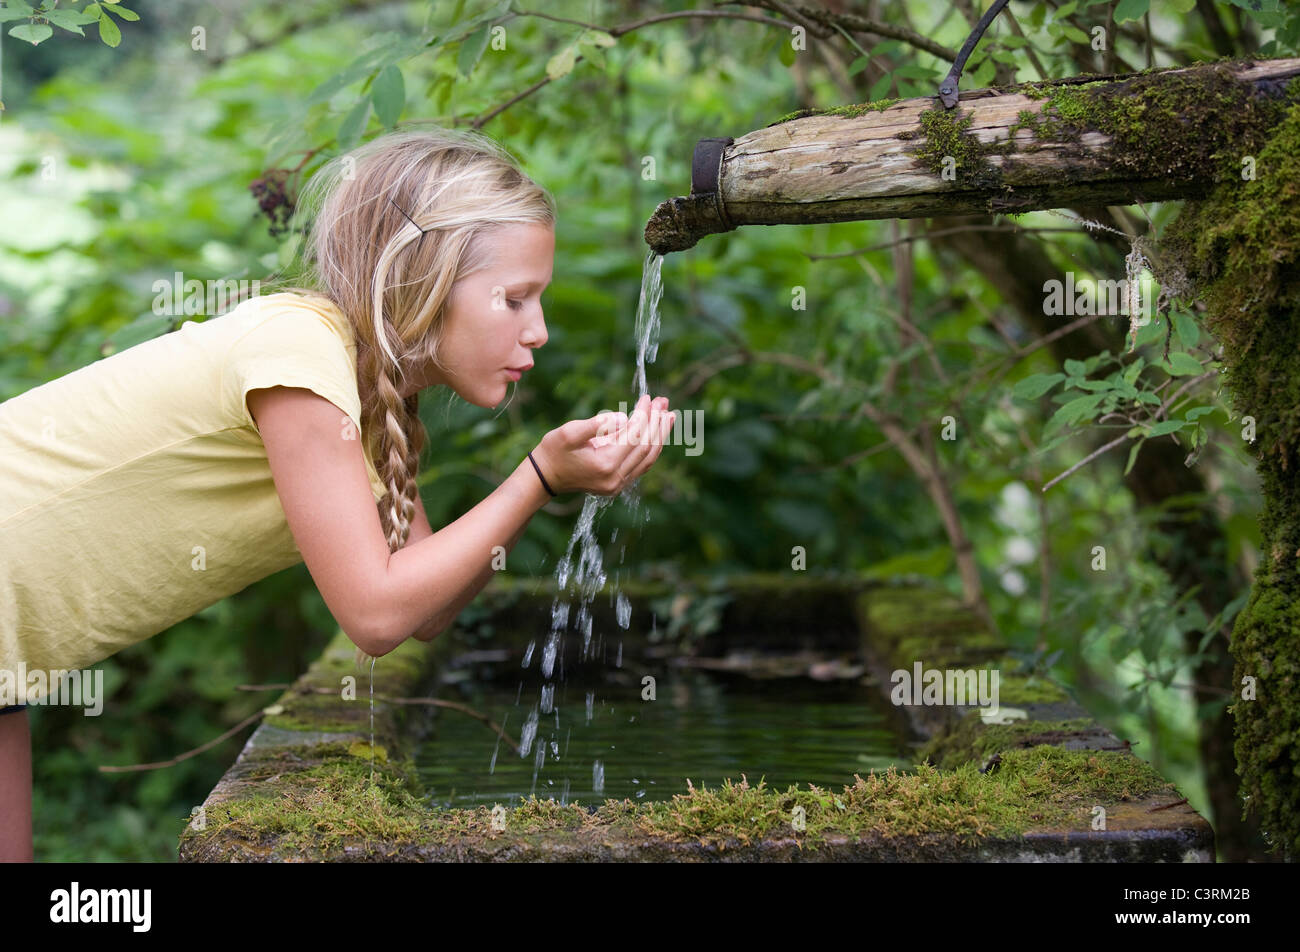 Austria, Mondsee, Girl (12-13 Years) drinking water from water spout - Stock Image